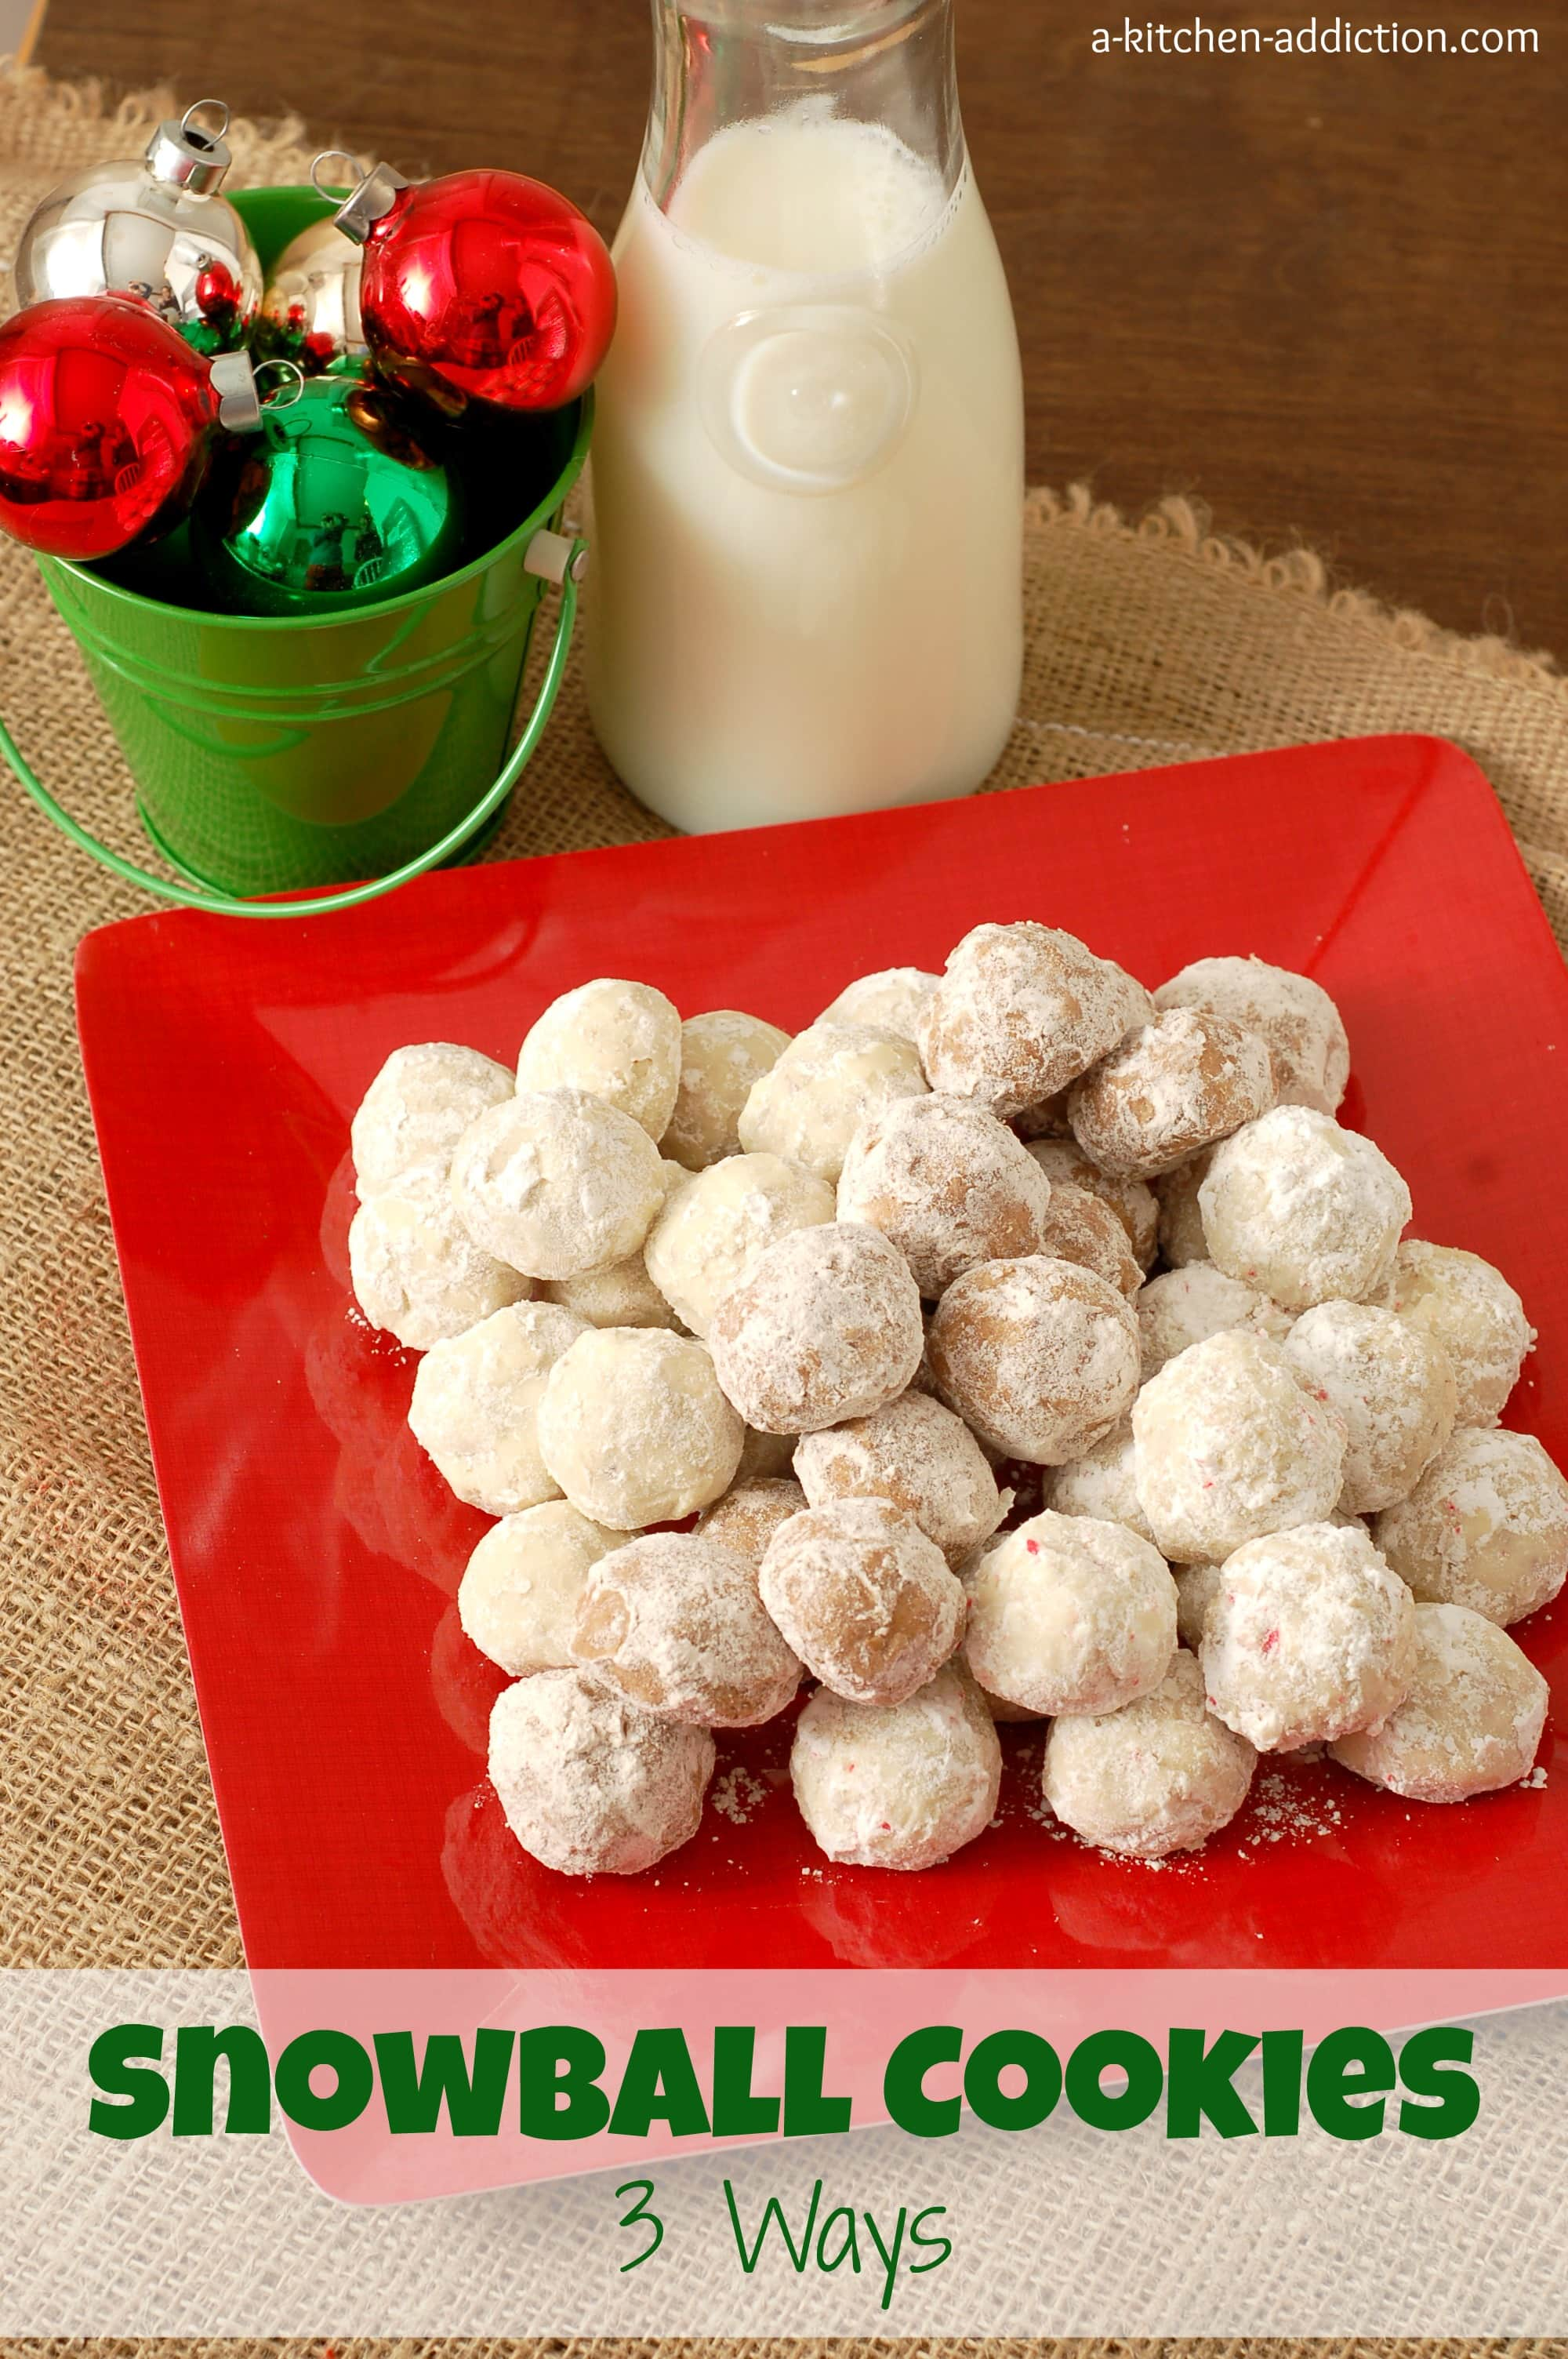 snowball cookies mexican wedding cookies russian teacakes what do you ...